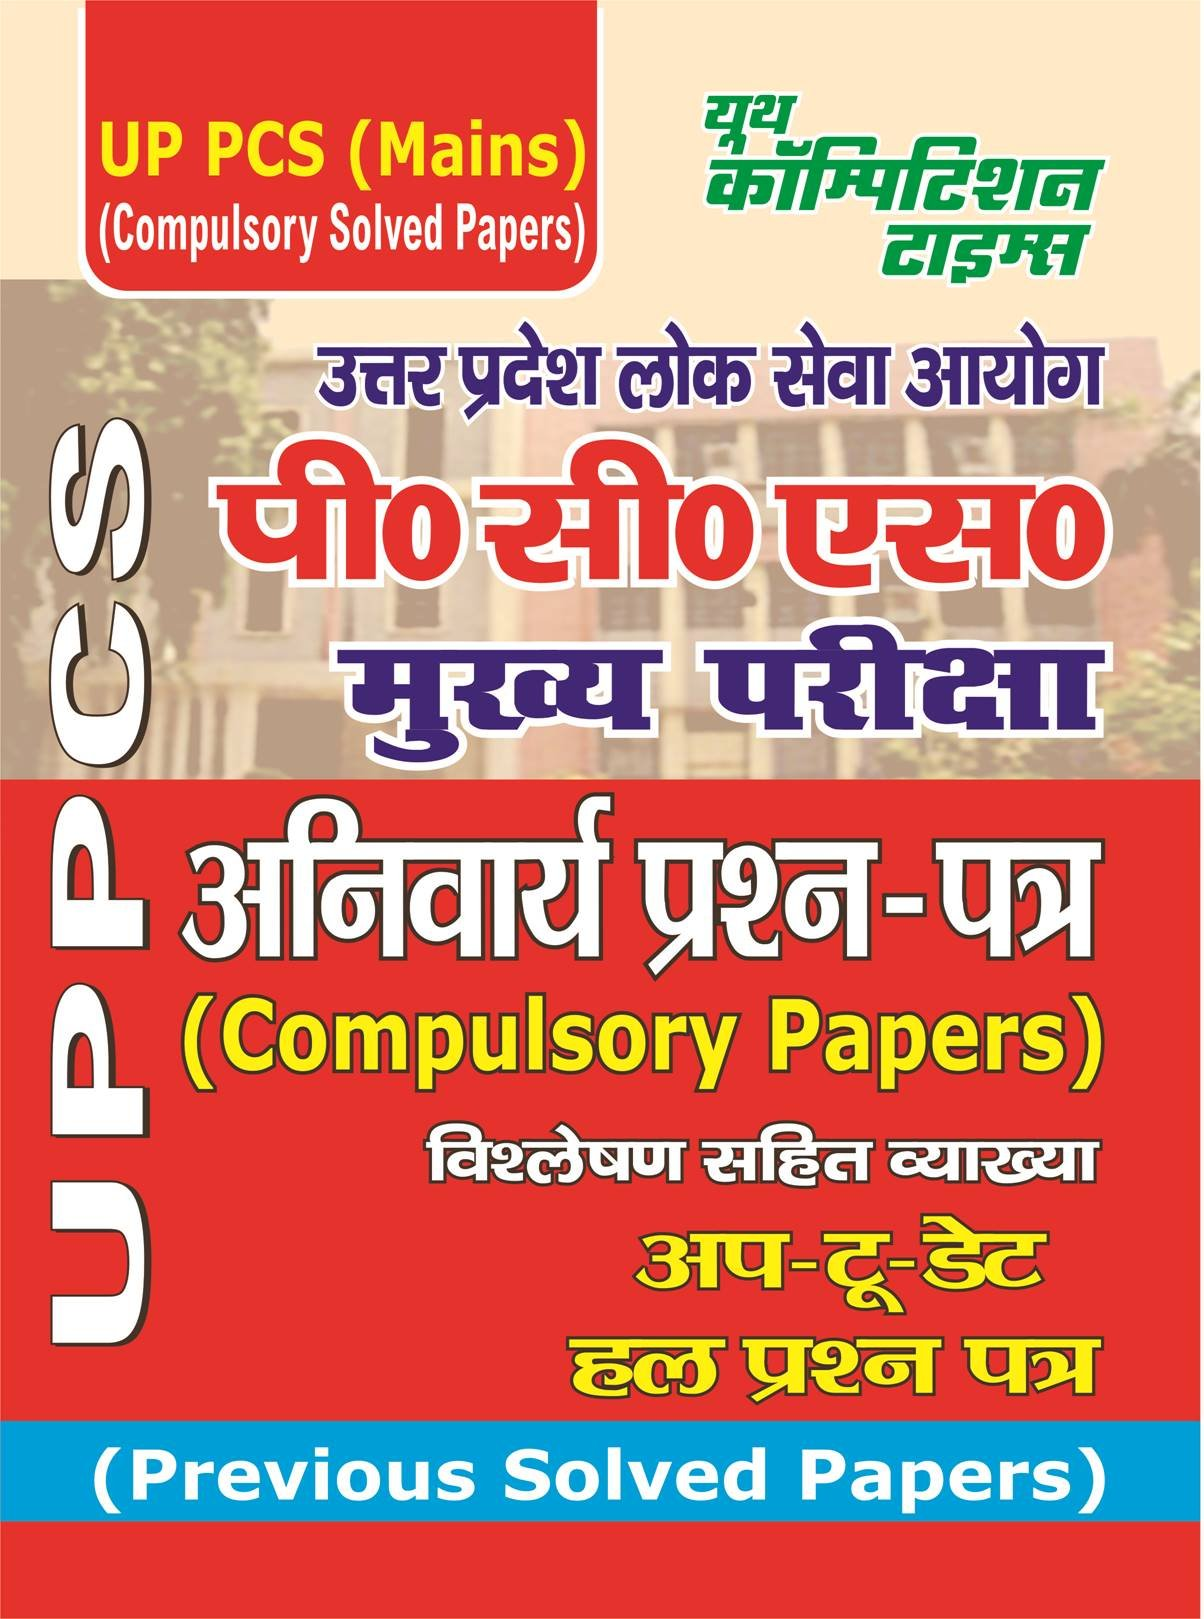 Buy UPPCS(Mains) Compulsory Papers Book Online at Low Prices